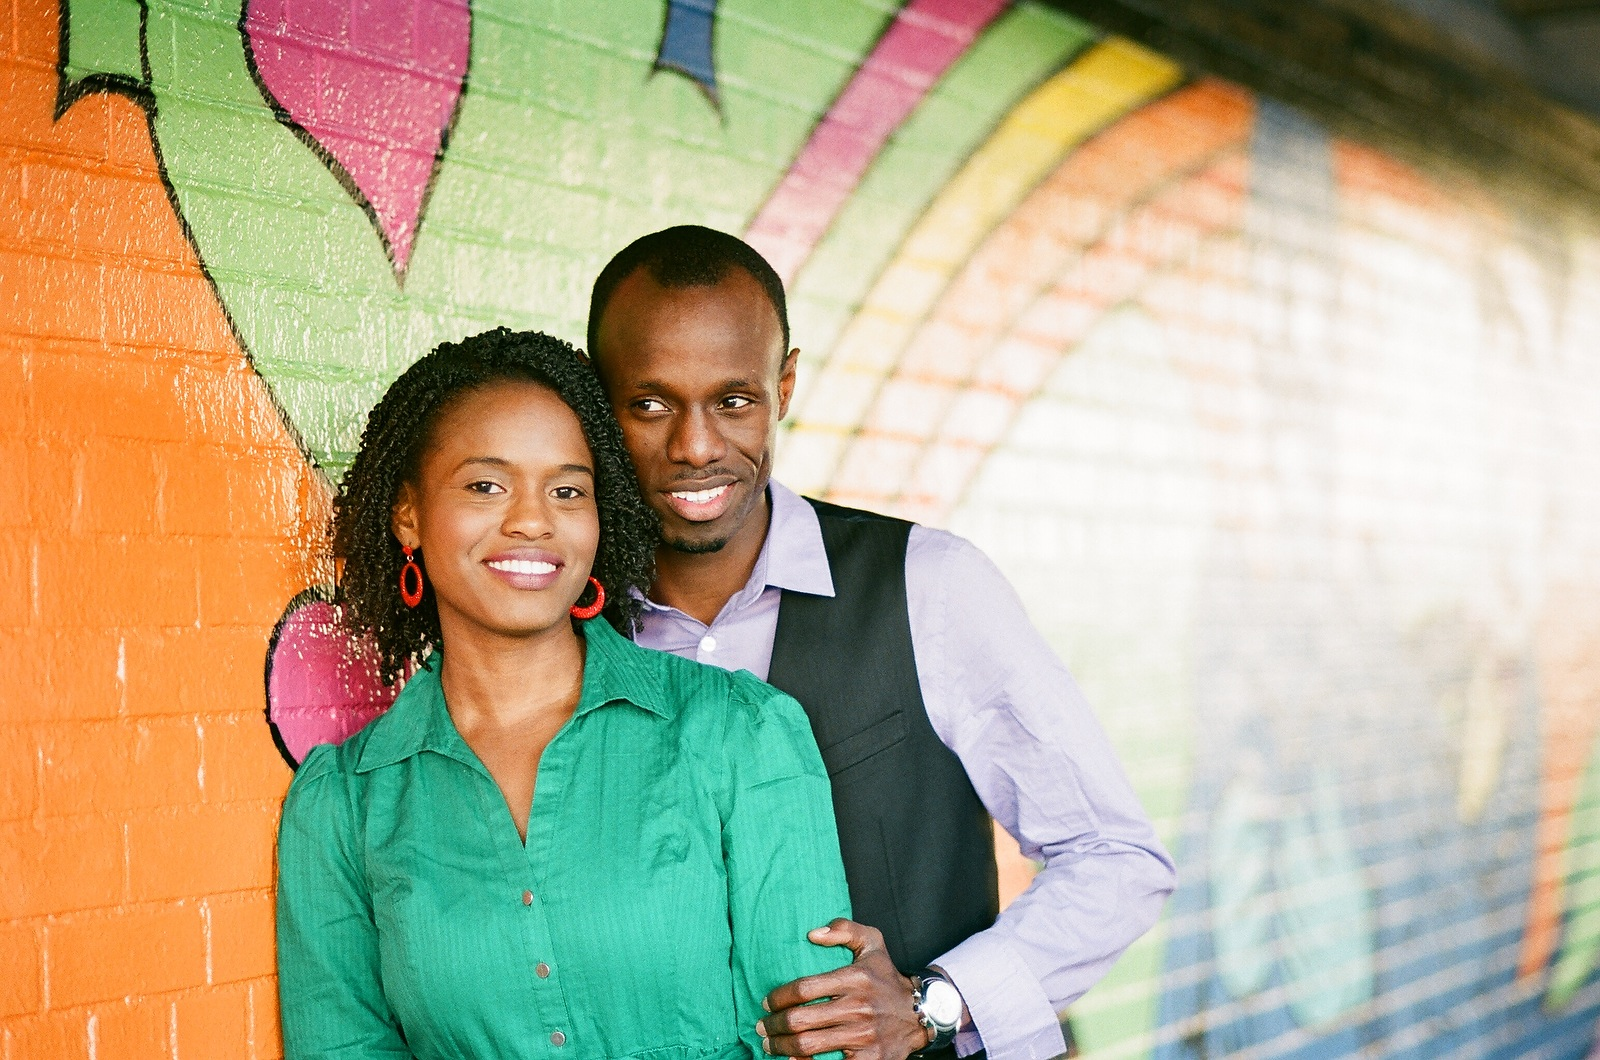 engaged couple in meatpacking district colorful graffiti